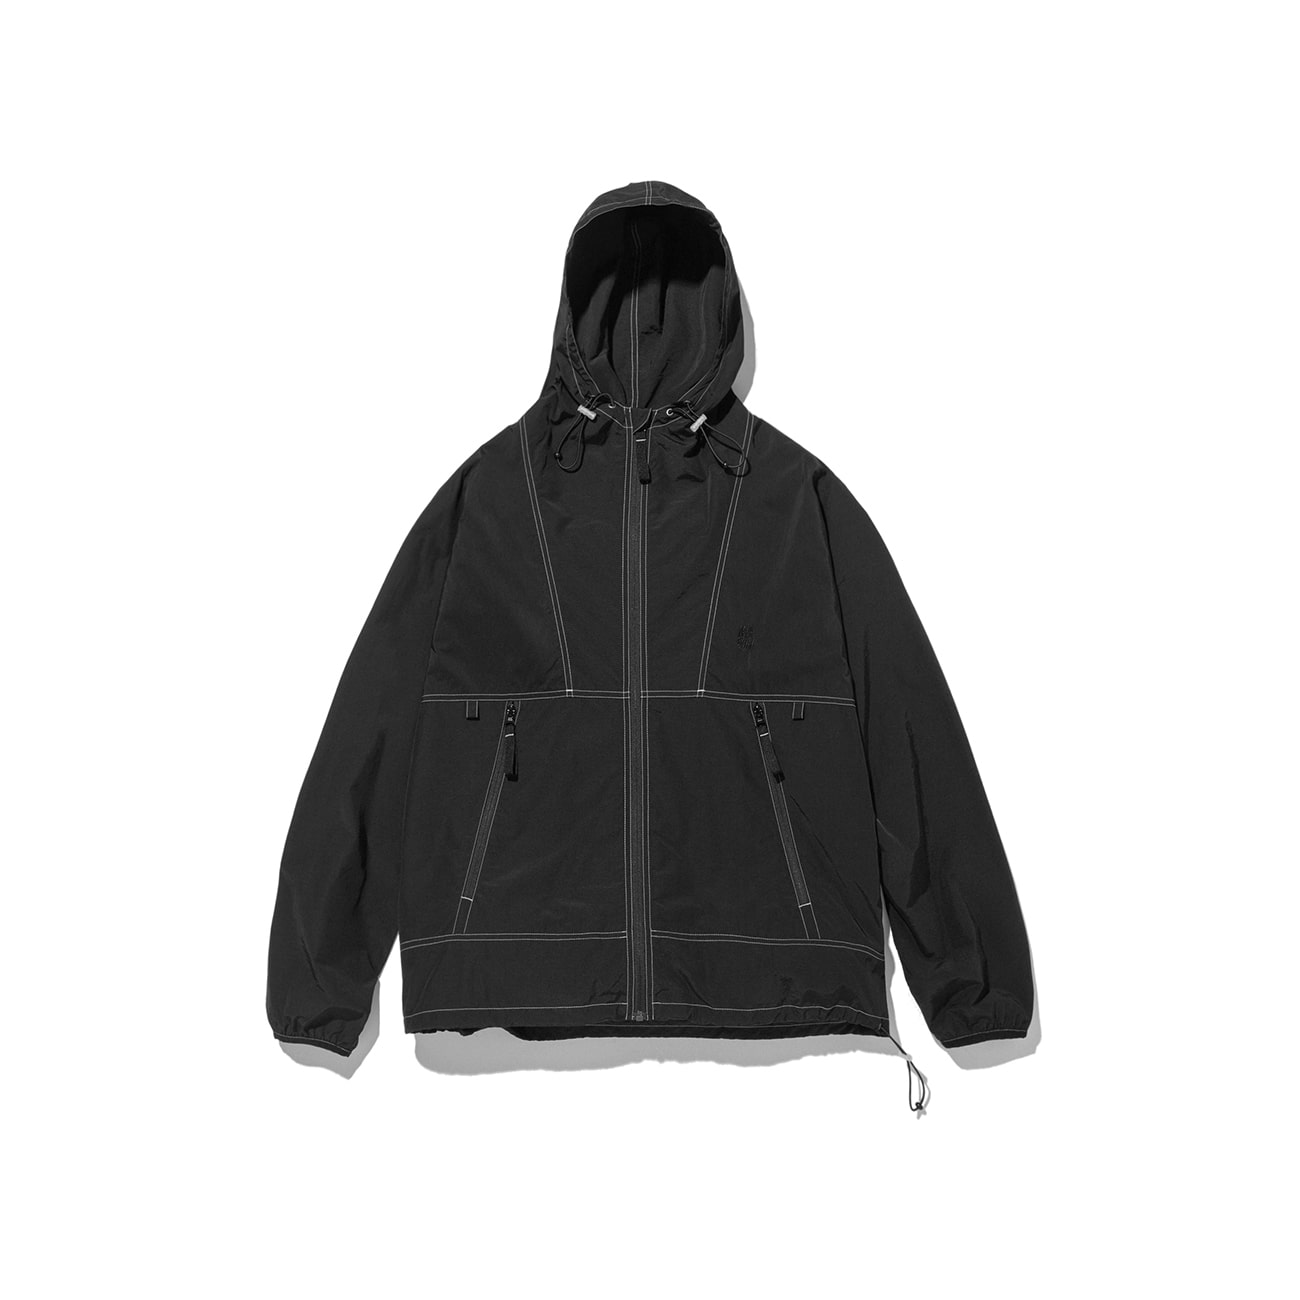 M.Nii x LIFUL Windbreaker